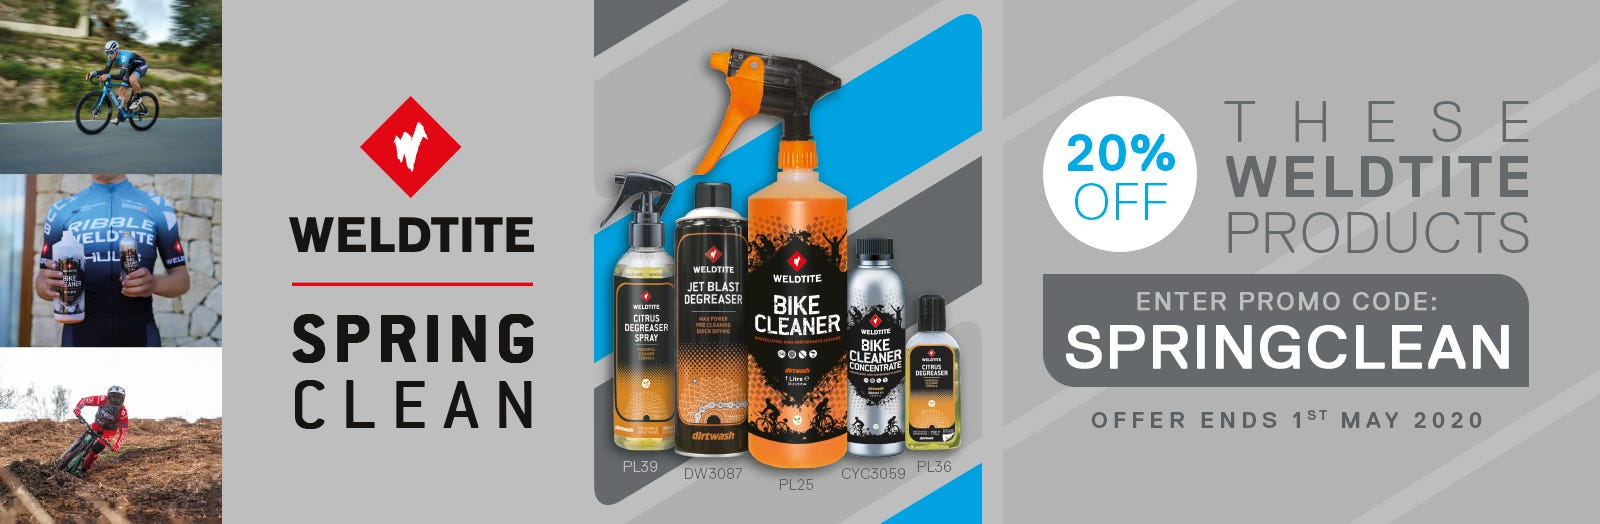 Weldtite | Spring Clean Offer | 20% Off